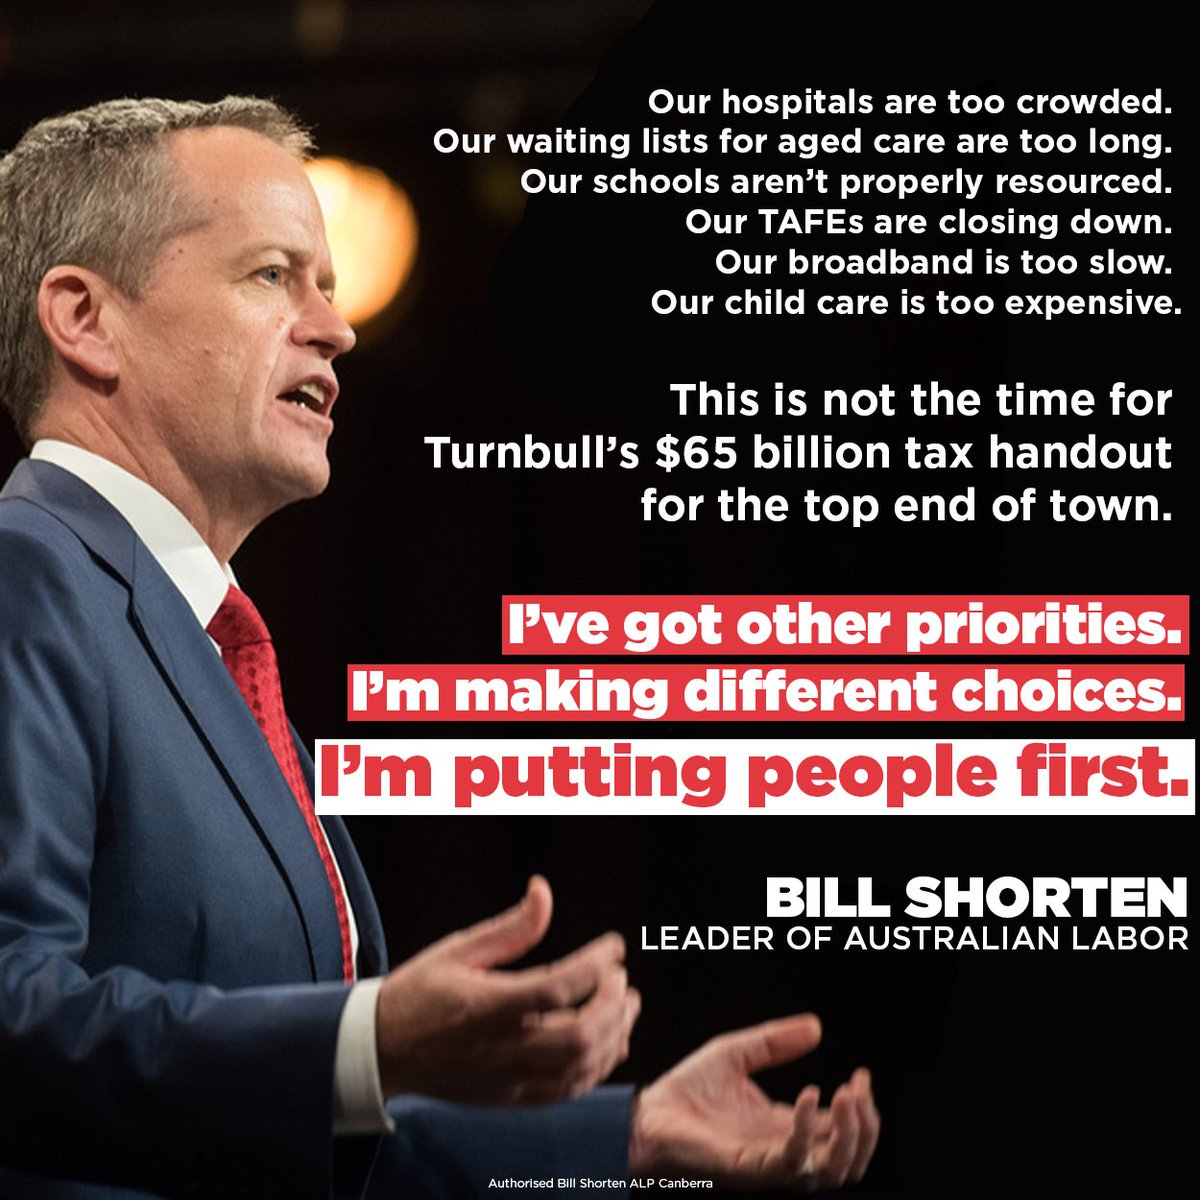 Turnbull's choosing the top end of town. I'm putting people first.